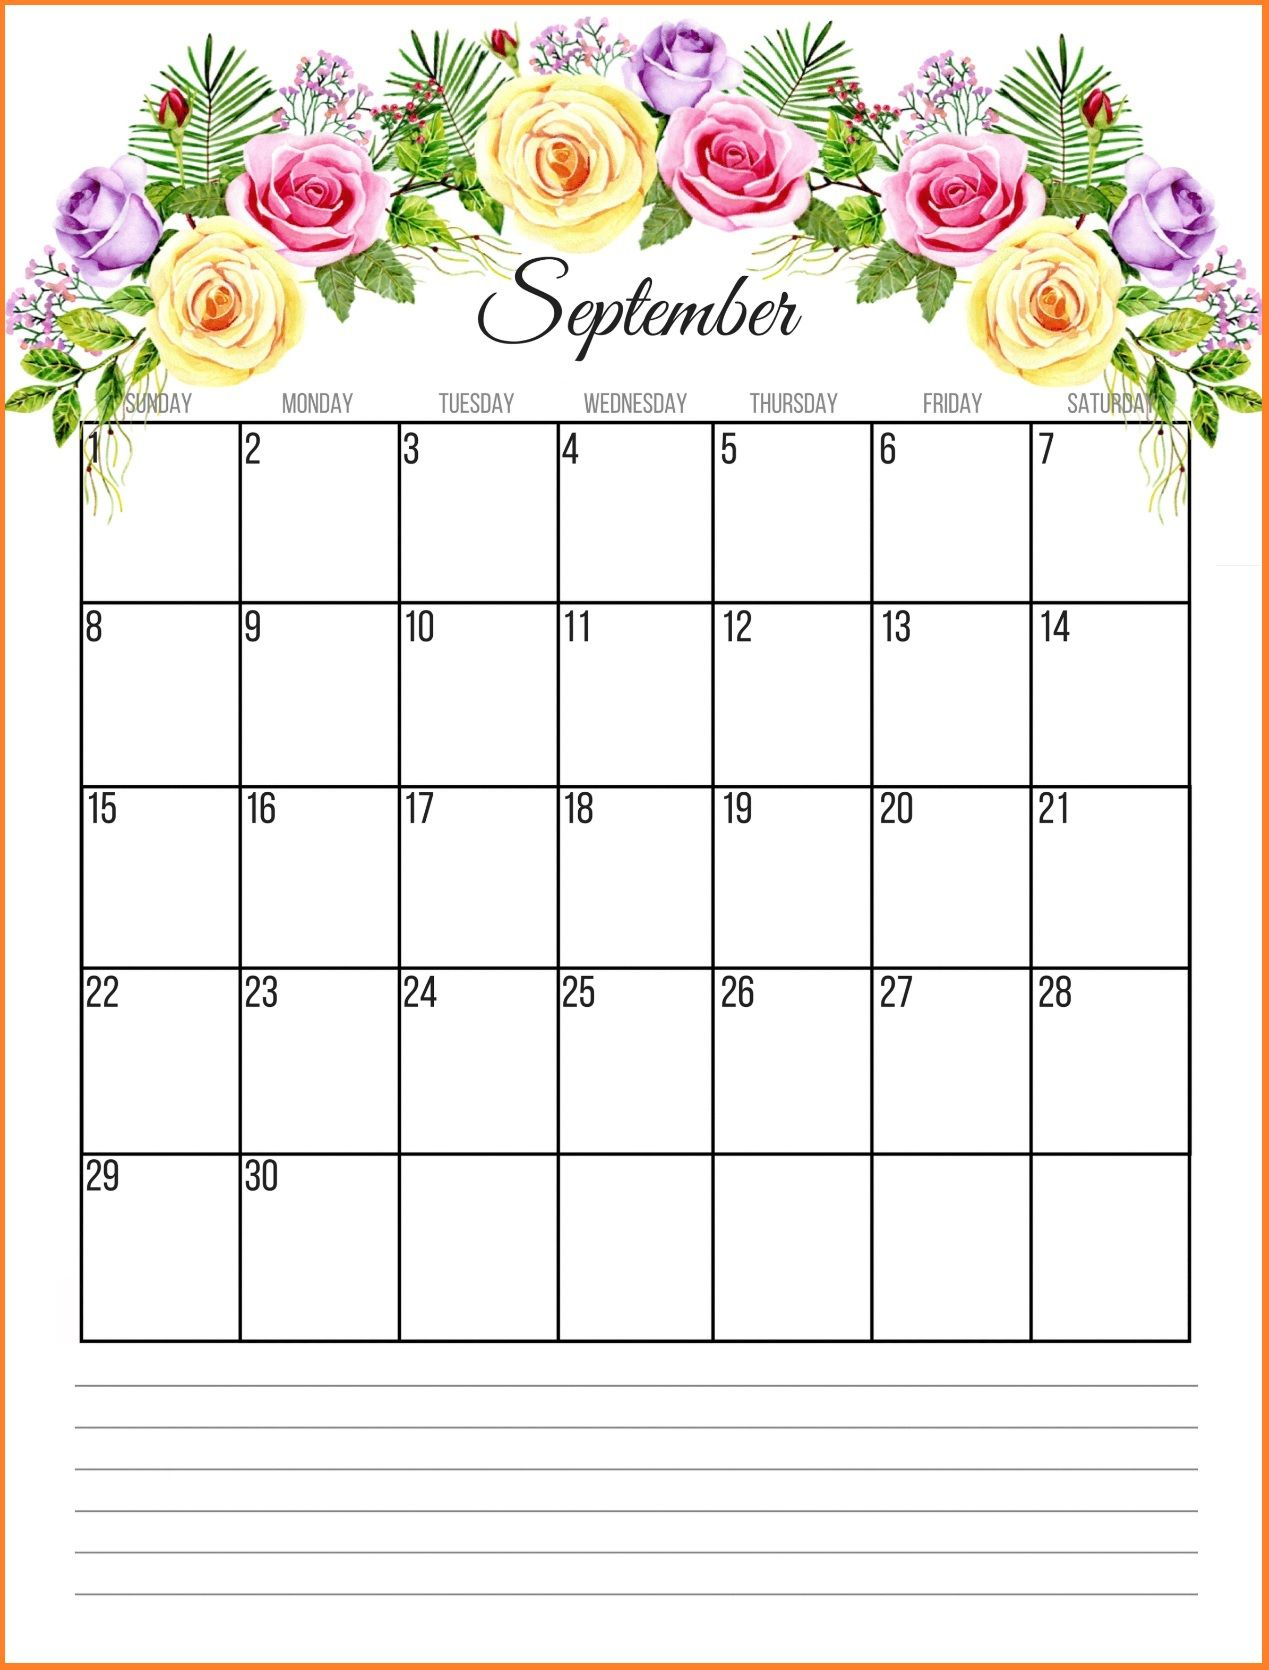 Printable Calendar September 2018 Floral Calendar | Juli with regard to Disney Printable Calendar